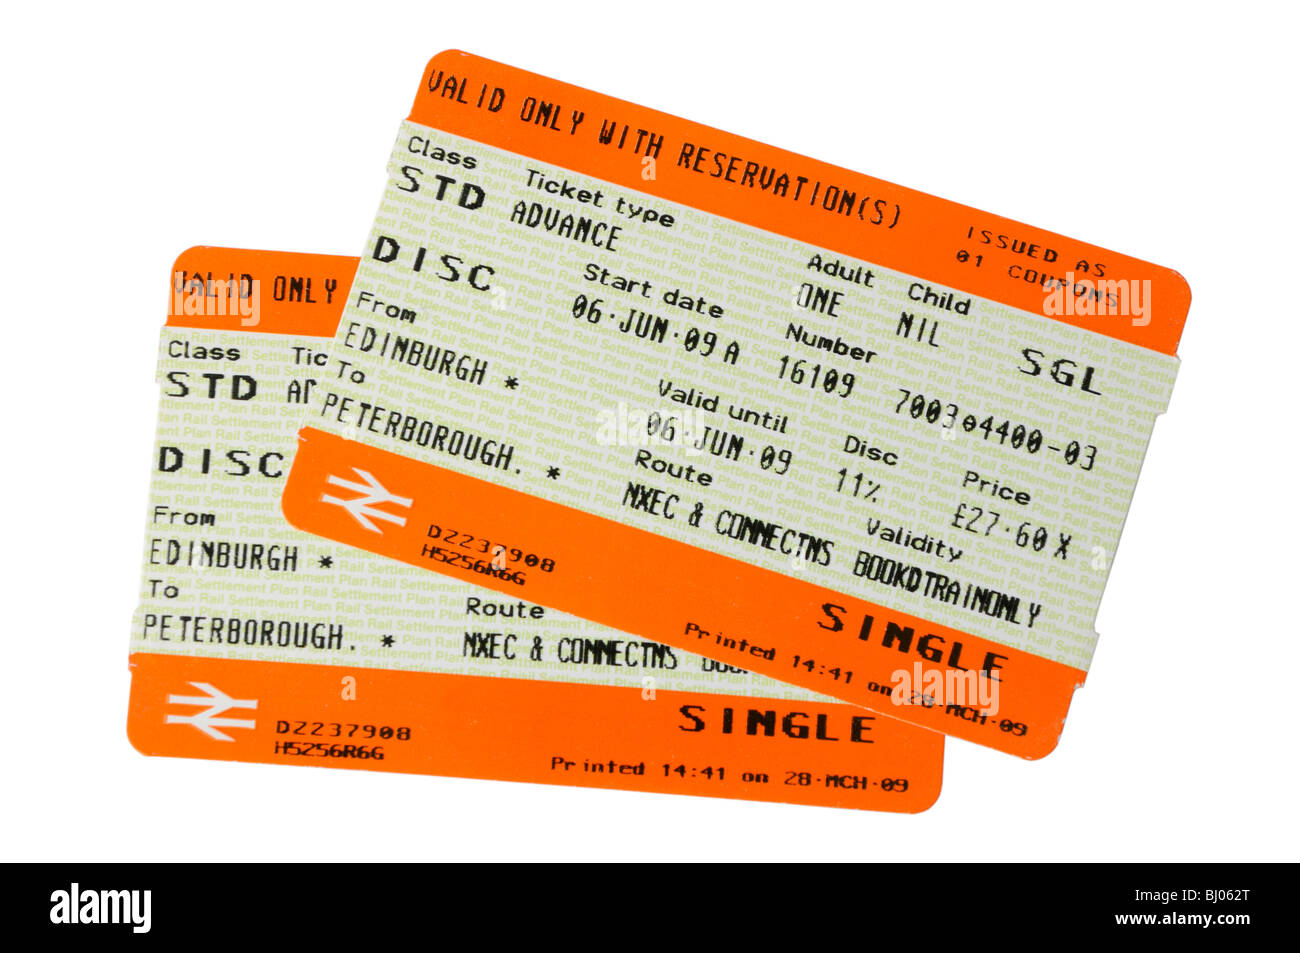 A pair of UK rail tickets - Stock Image